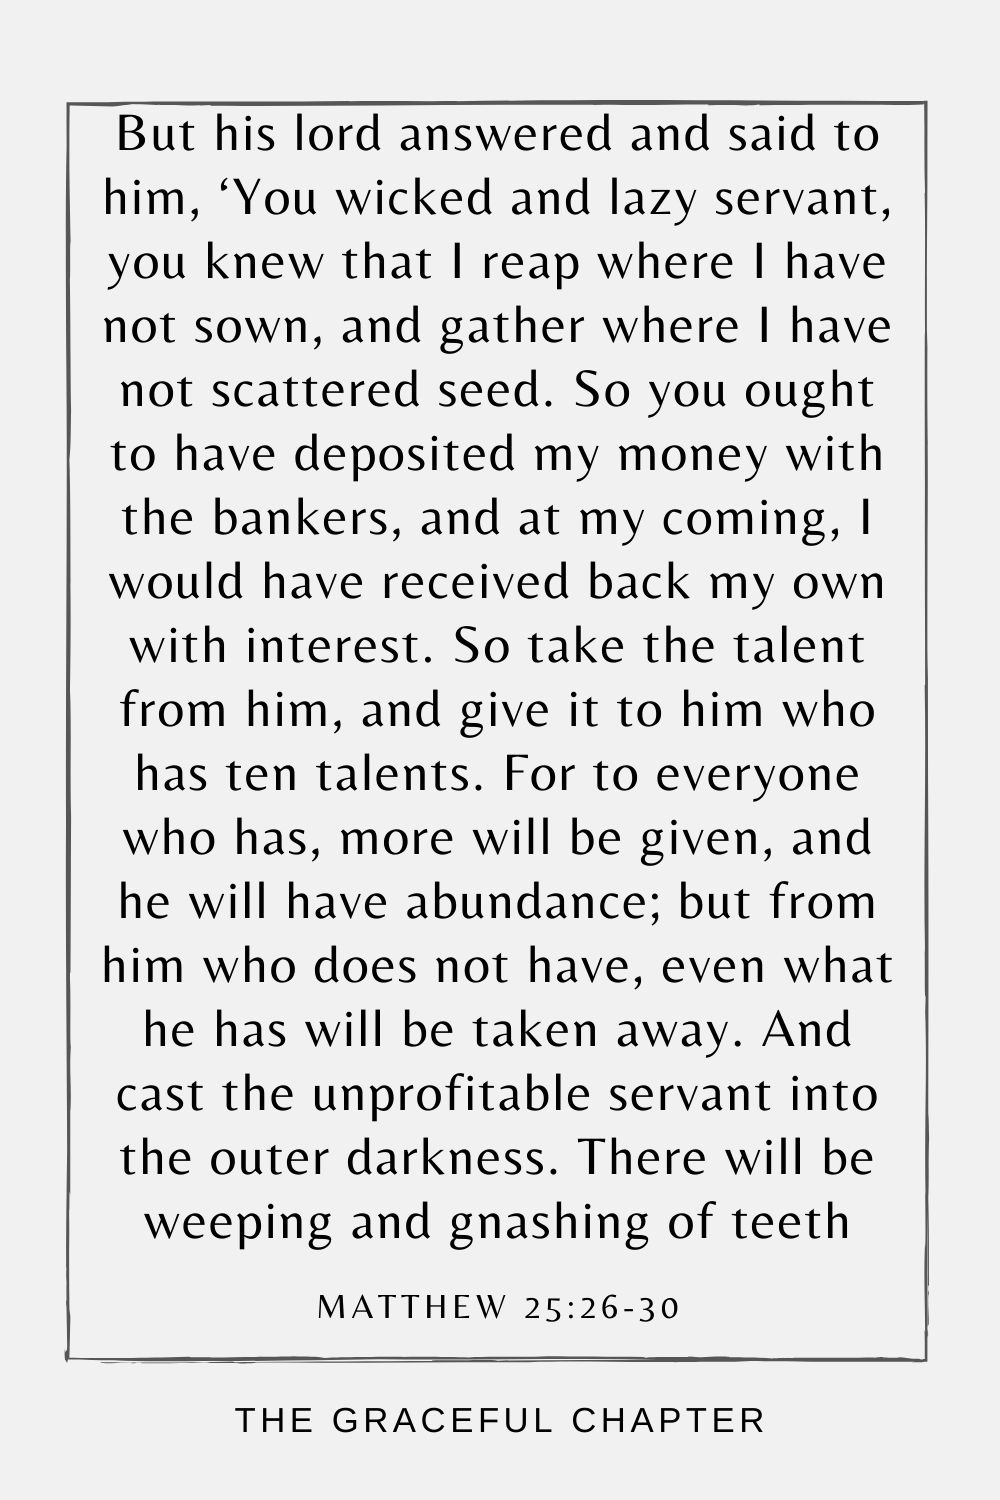 But his lord answered and said to him, 'You wicked and lazy servant, you knew that I reap where I have not sown, and gather where I have not scattered seed. So you ought to have deposited my money with the bankers, and at my coming, I would have received back my own with interest.So take the talent from him, and give it to him who has ten talents. For to everyone who has, more will be given, and he will have abundance; but from him who does not have, even what he has will be taken away. And cast the unprofitable servant into the outer darkness. There will be weeping and gnashing of teeth Matthew 25:26-30